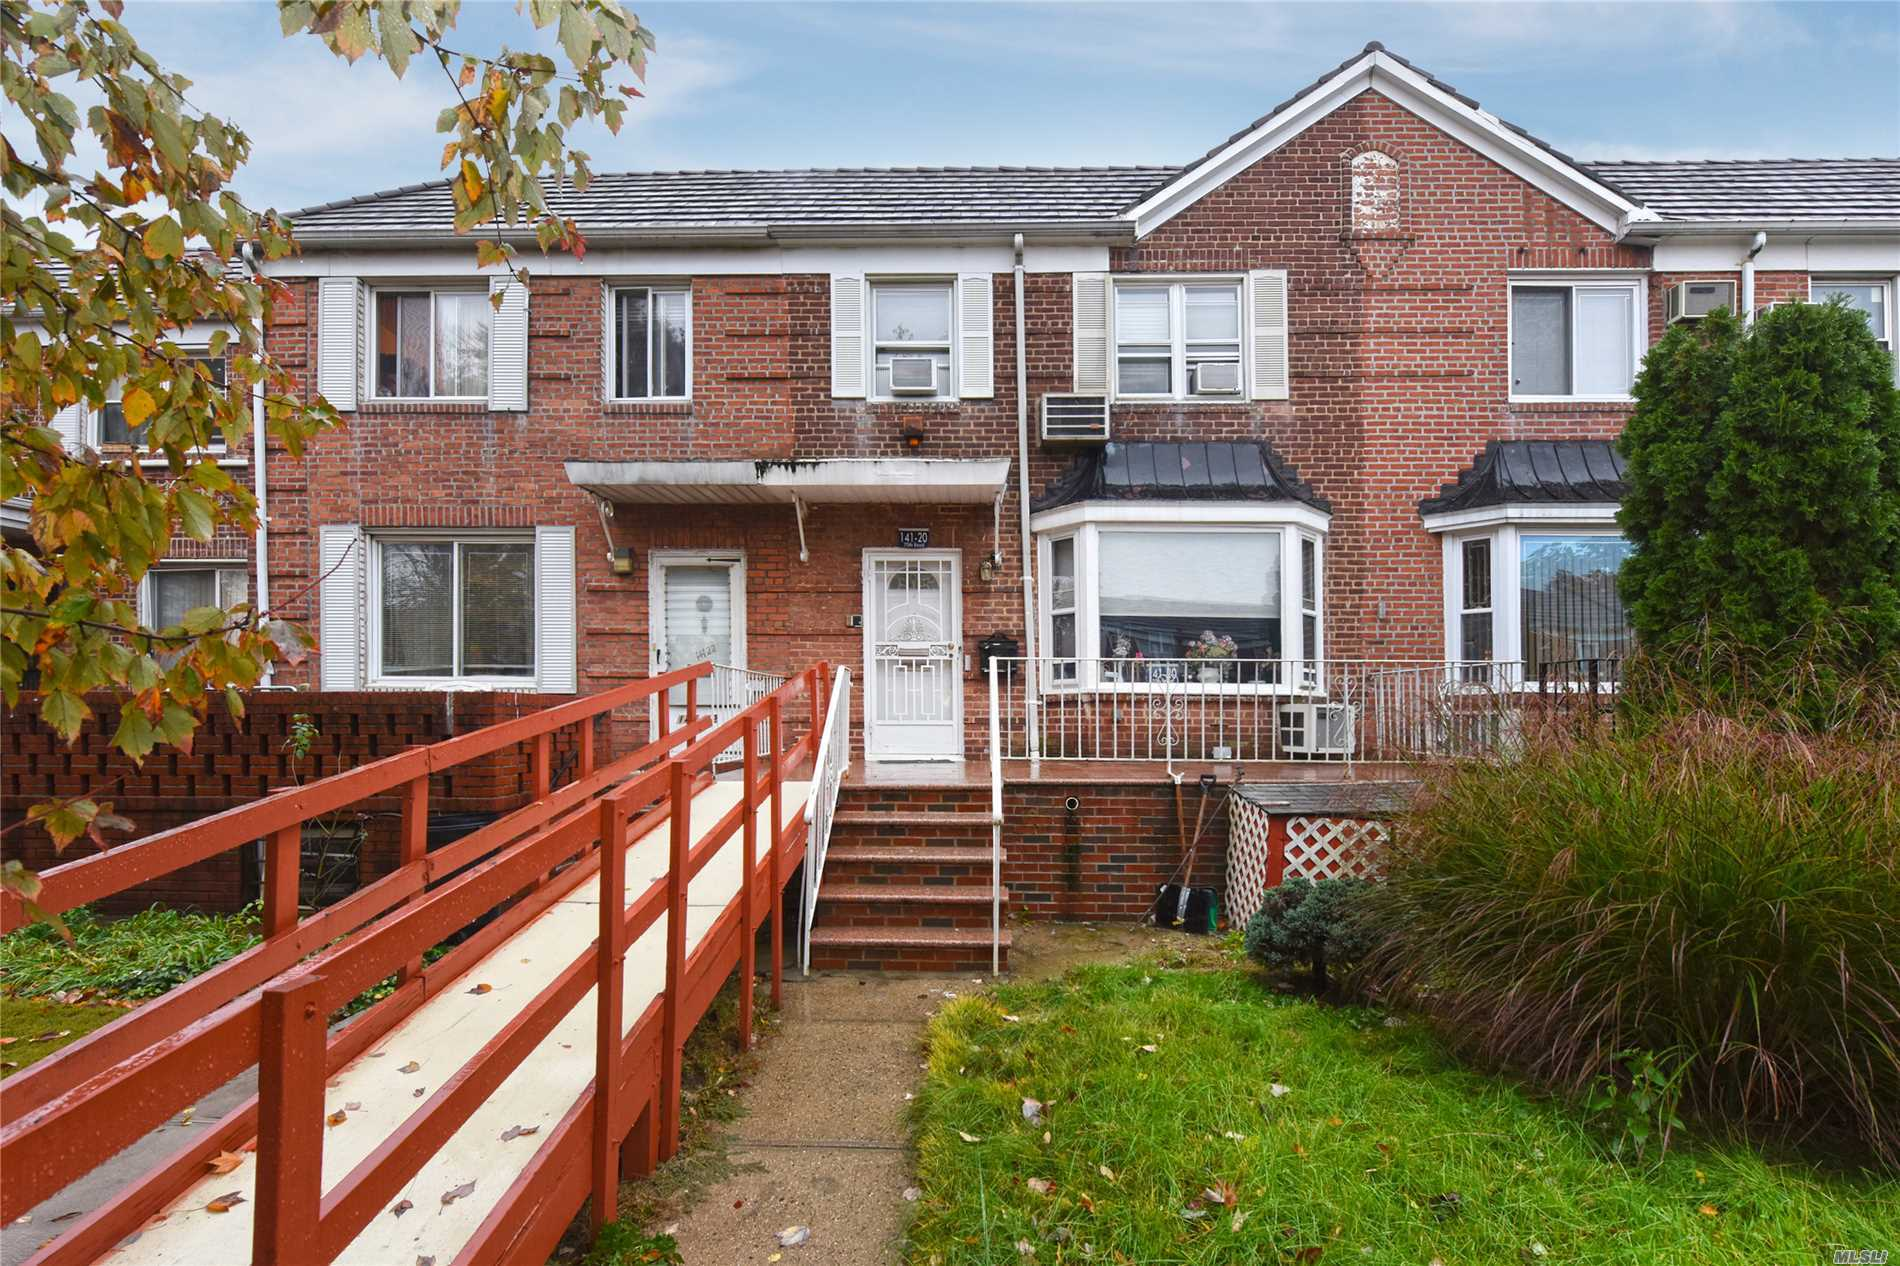 Rare Gem On One Of The Best Blocks Of Kew Gardens Hills. 20 Foot House, 3 Bedrooms, Sunken Living Room, Dining Room, Den, Kosher Kitchen, 3.5 Bathrooms, Master Suite, Finished Basement. Must See!!!!